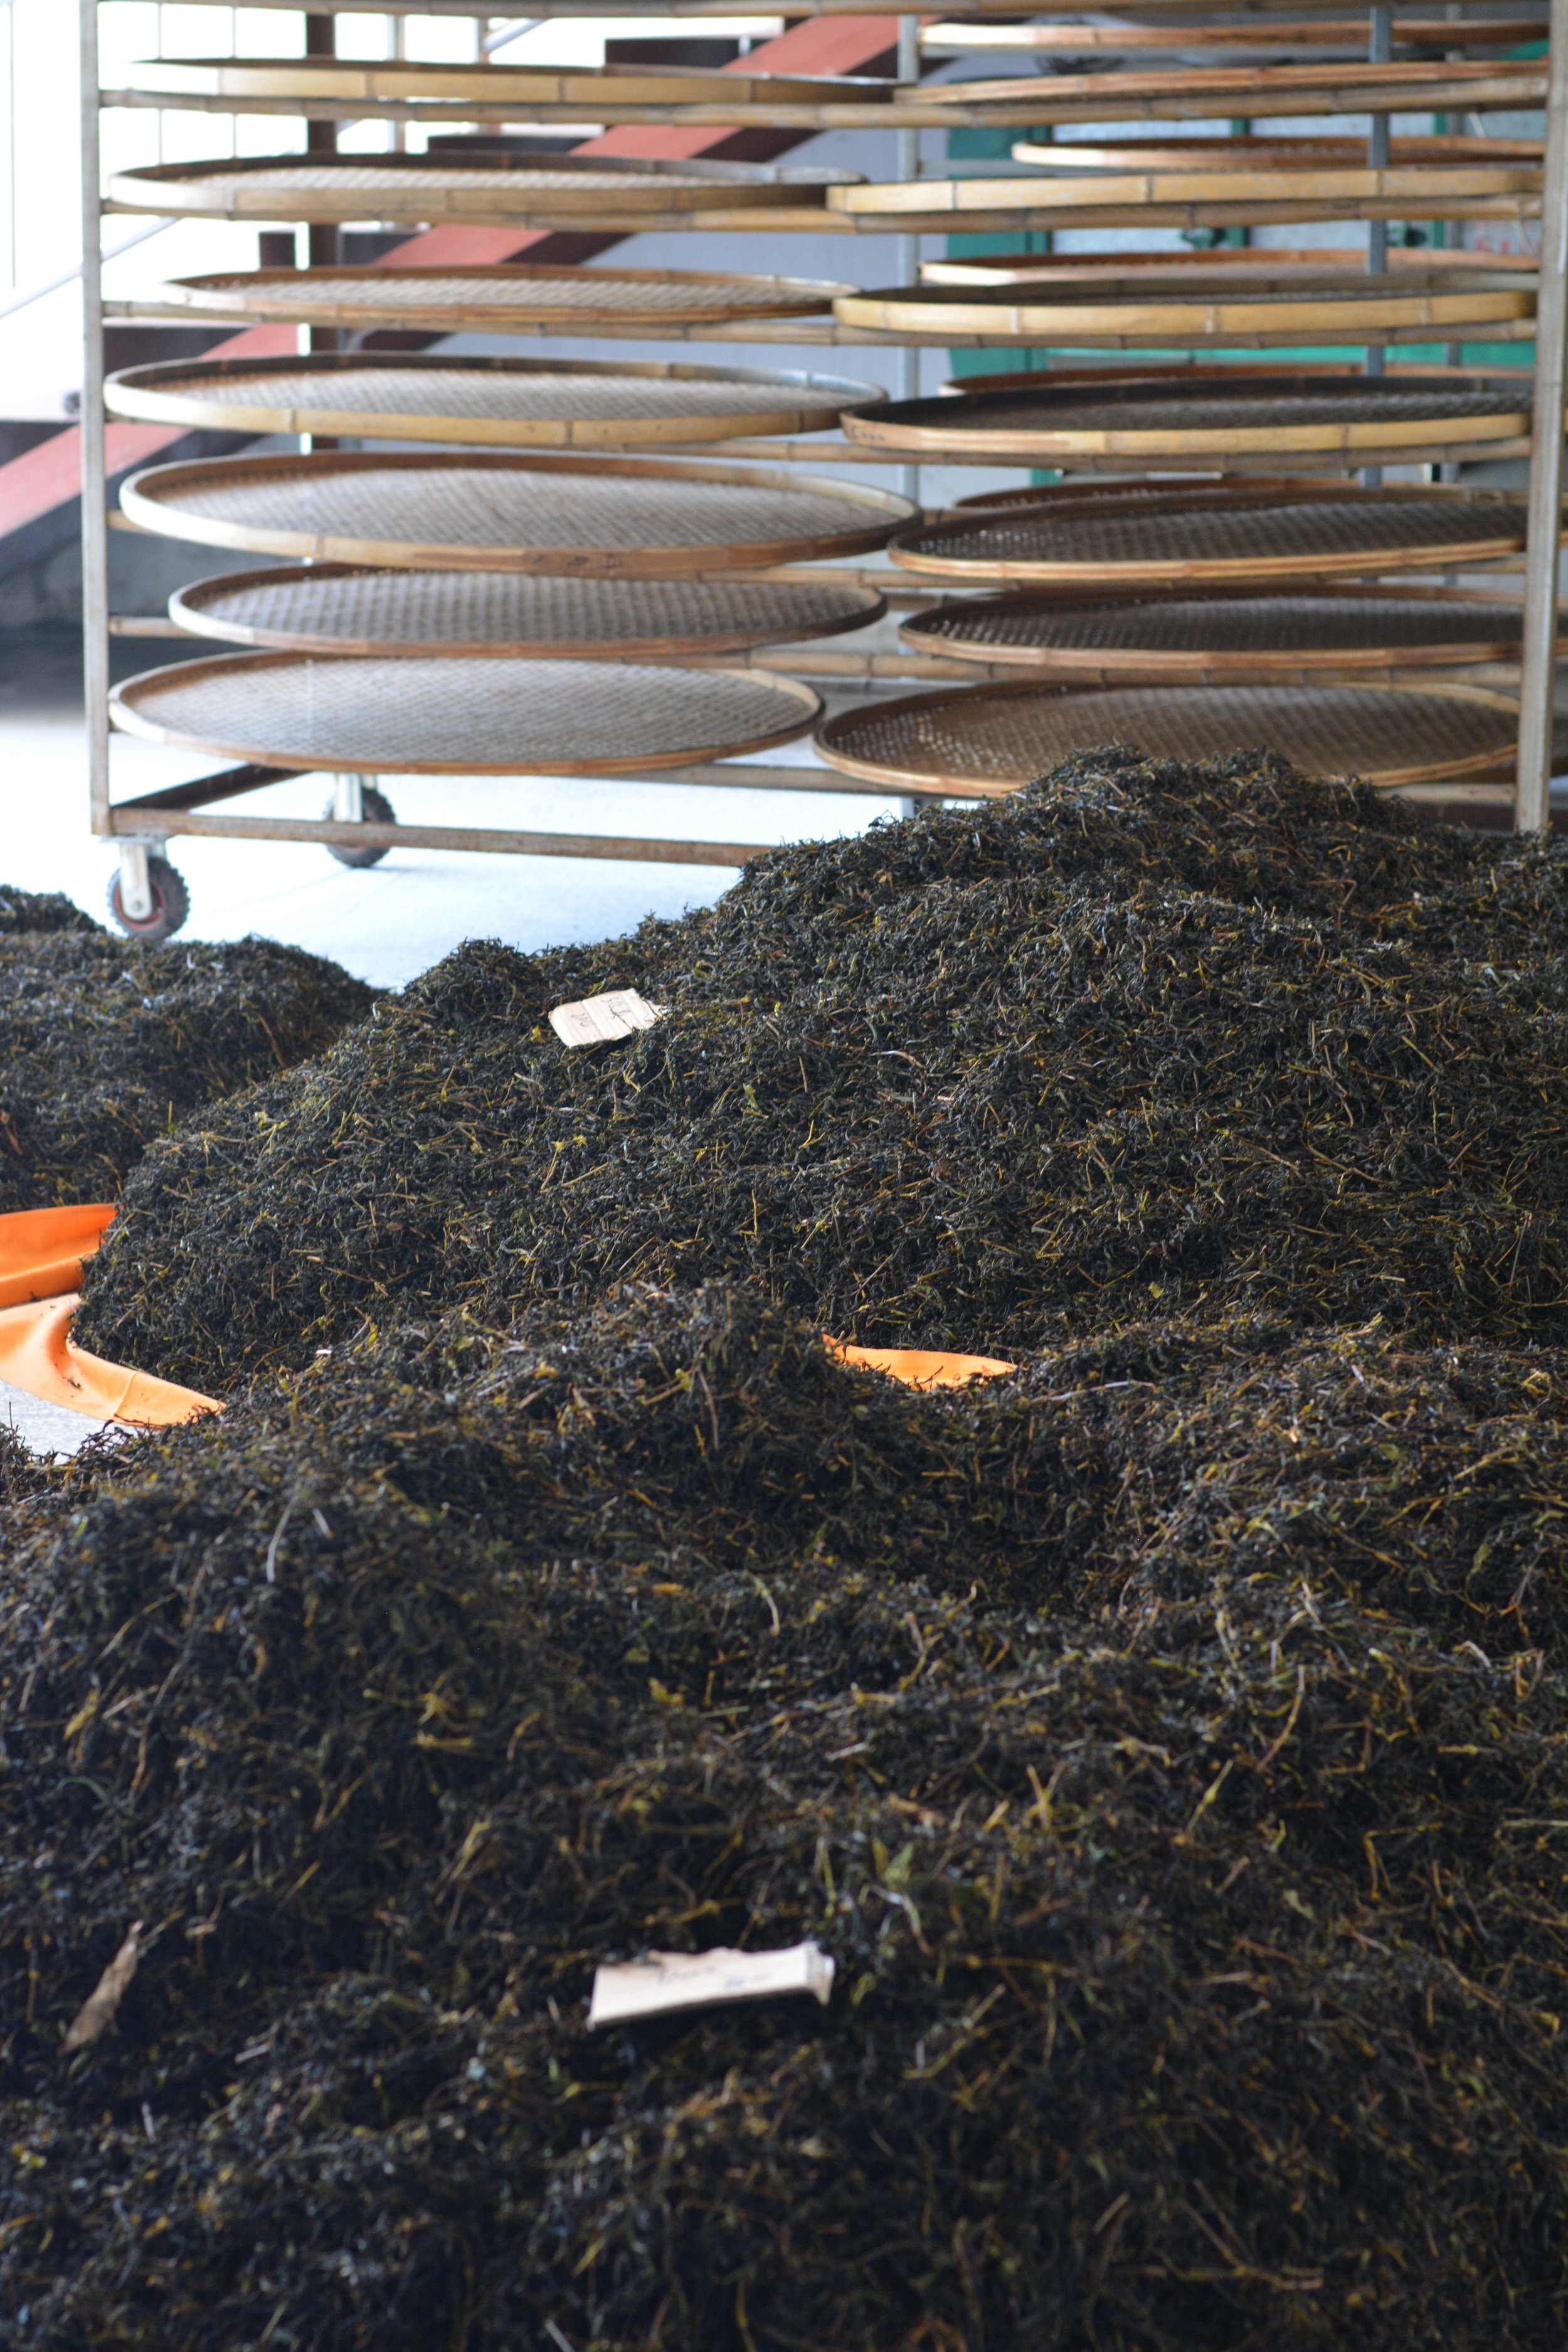 Then the leaves are oxidized in an oven-like machine and left out to dry. Depending on the tea type and desired taste profile, the tea master will repeat the process with the same leaves many times over a period of months.